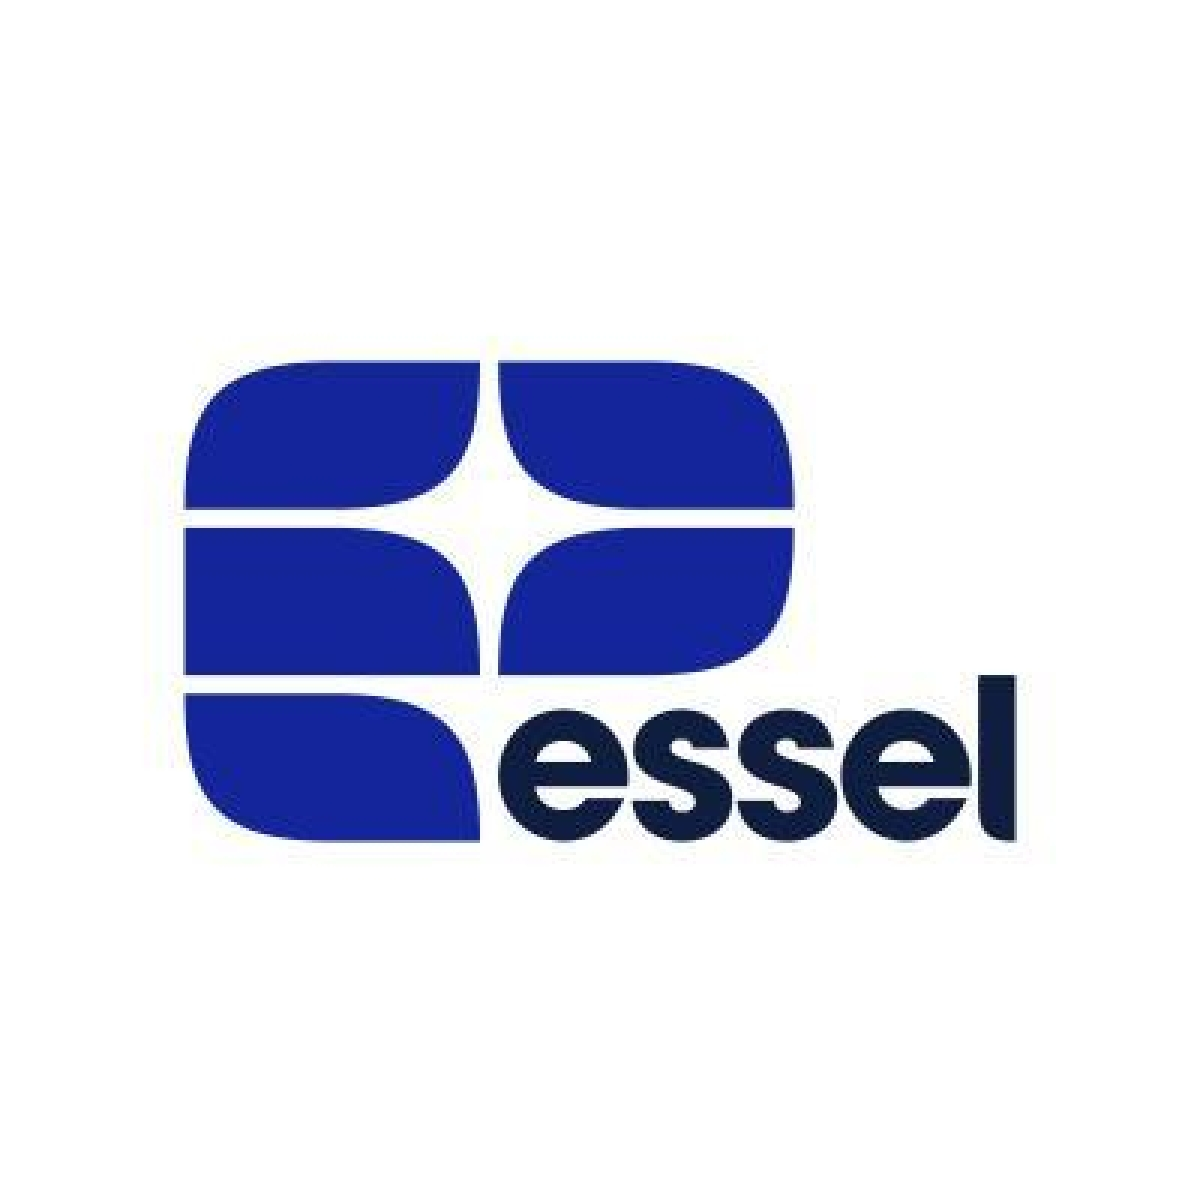 Essel Propack Q4 profit down 6 pc to Rs 50 cr